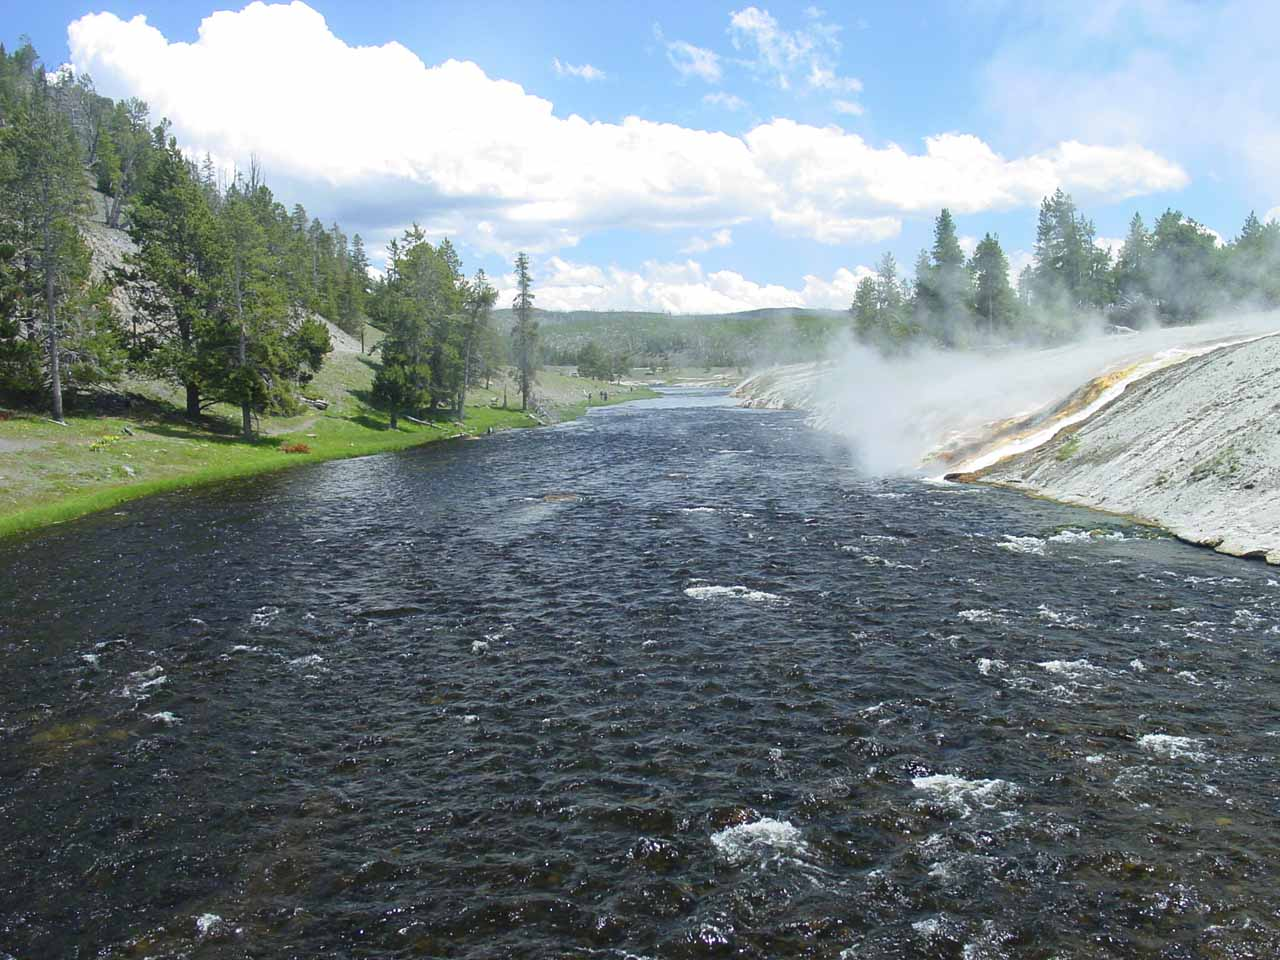 Some thermal cascades spilling into the Firehole River by Excelsior Geyser